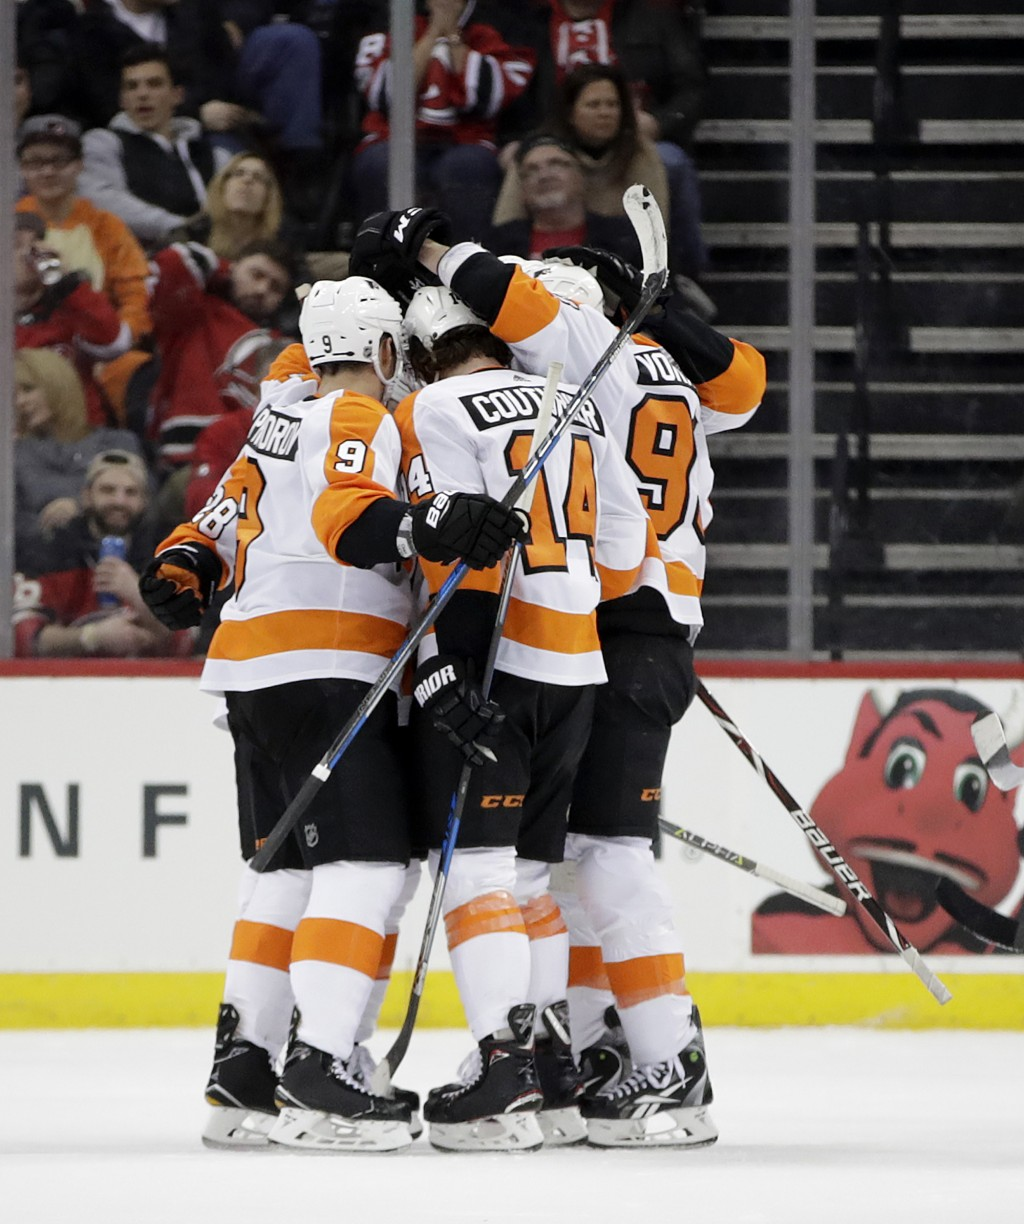 Philadelphia Flyers players celebrate a goal by Sean Couturier (14) against the New Jersey Devils during the second period of an NHL hockey game, Satu